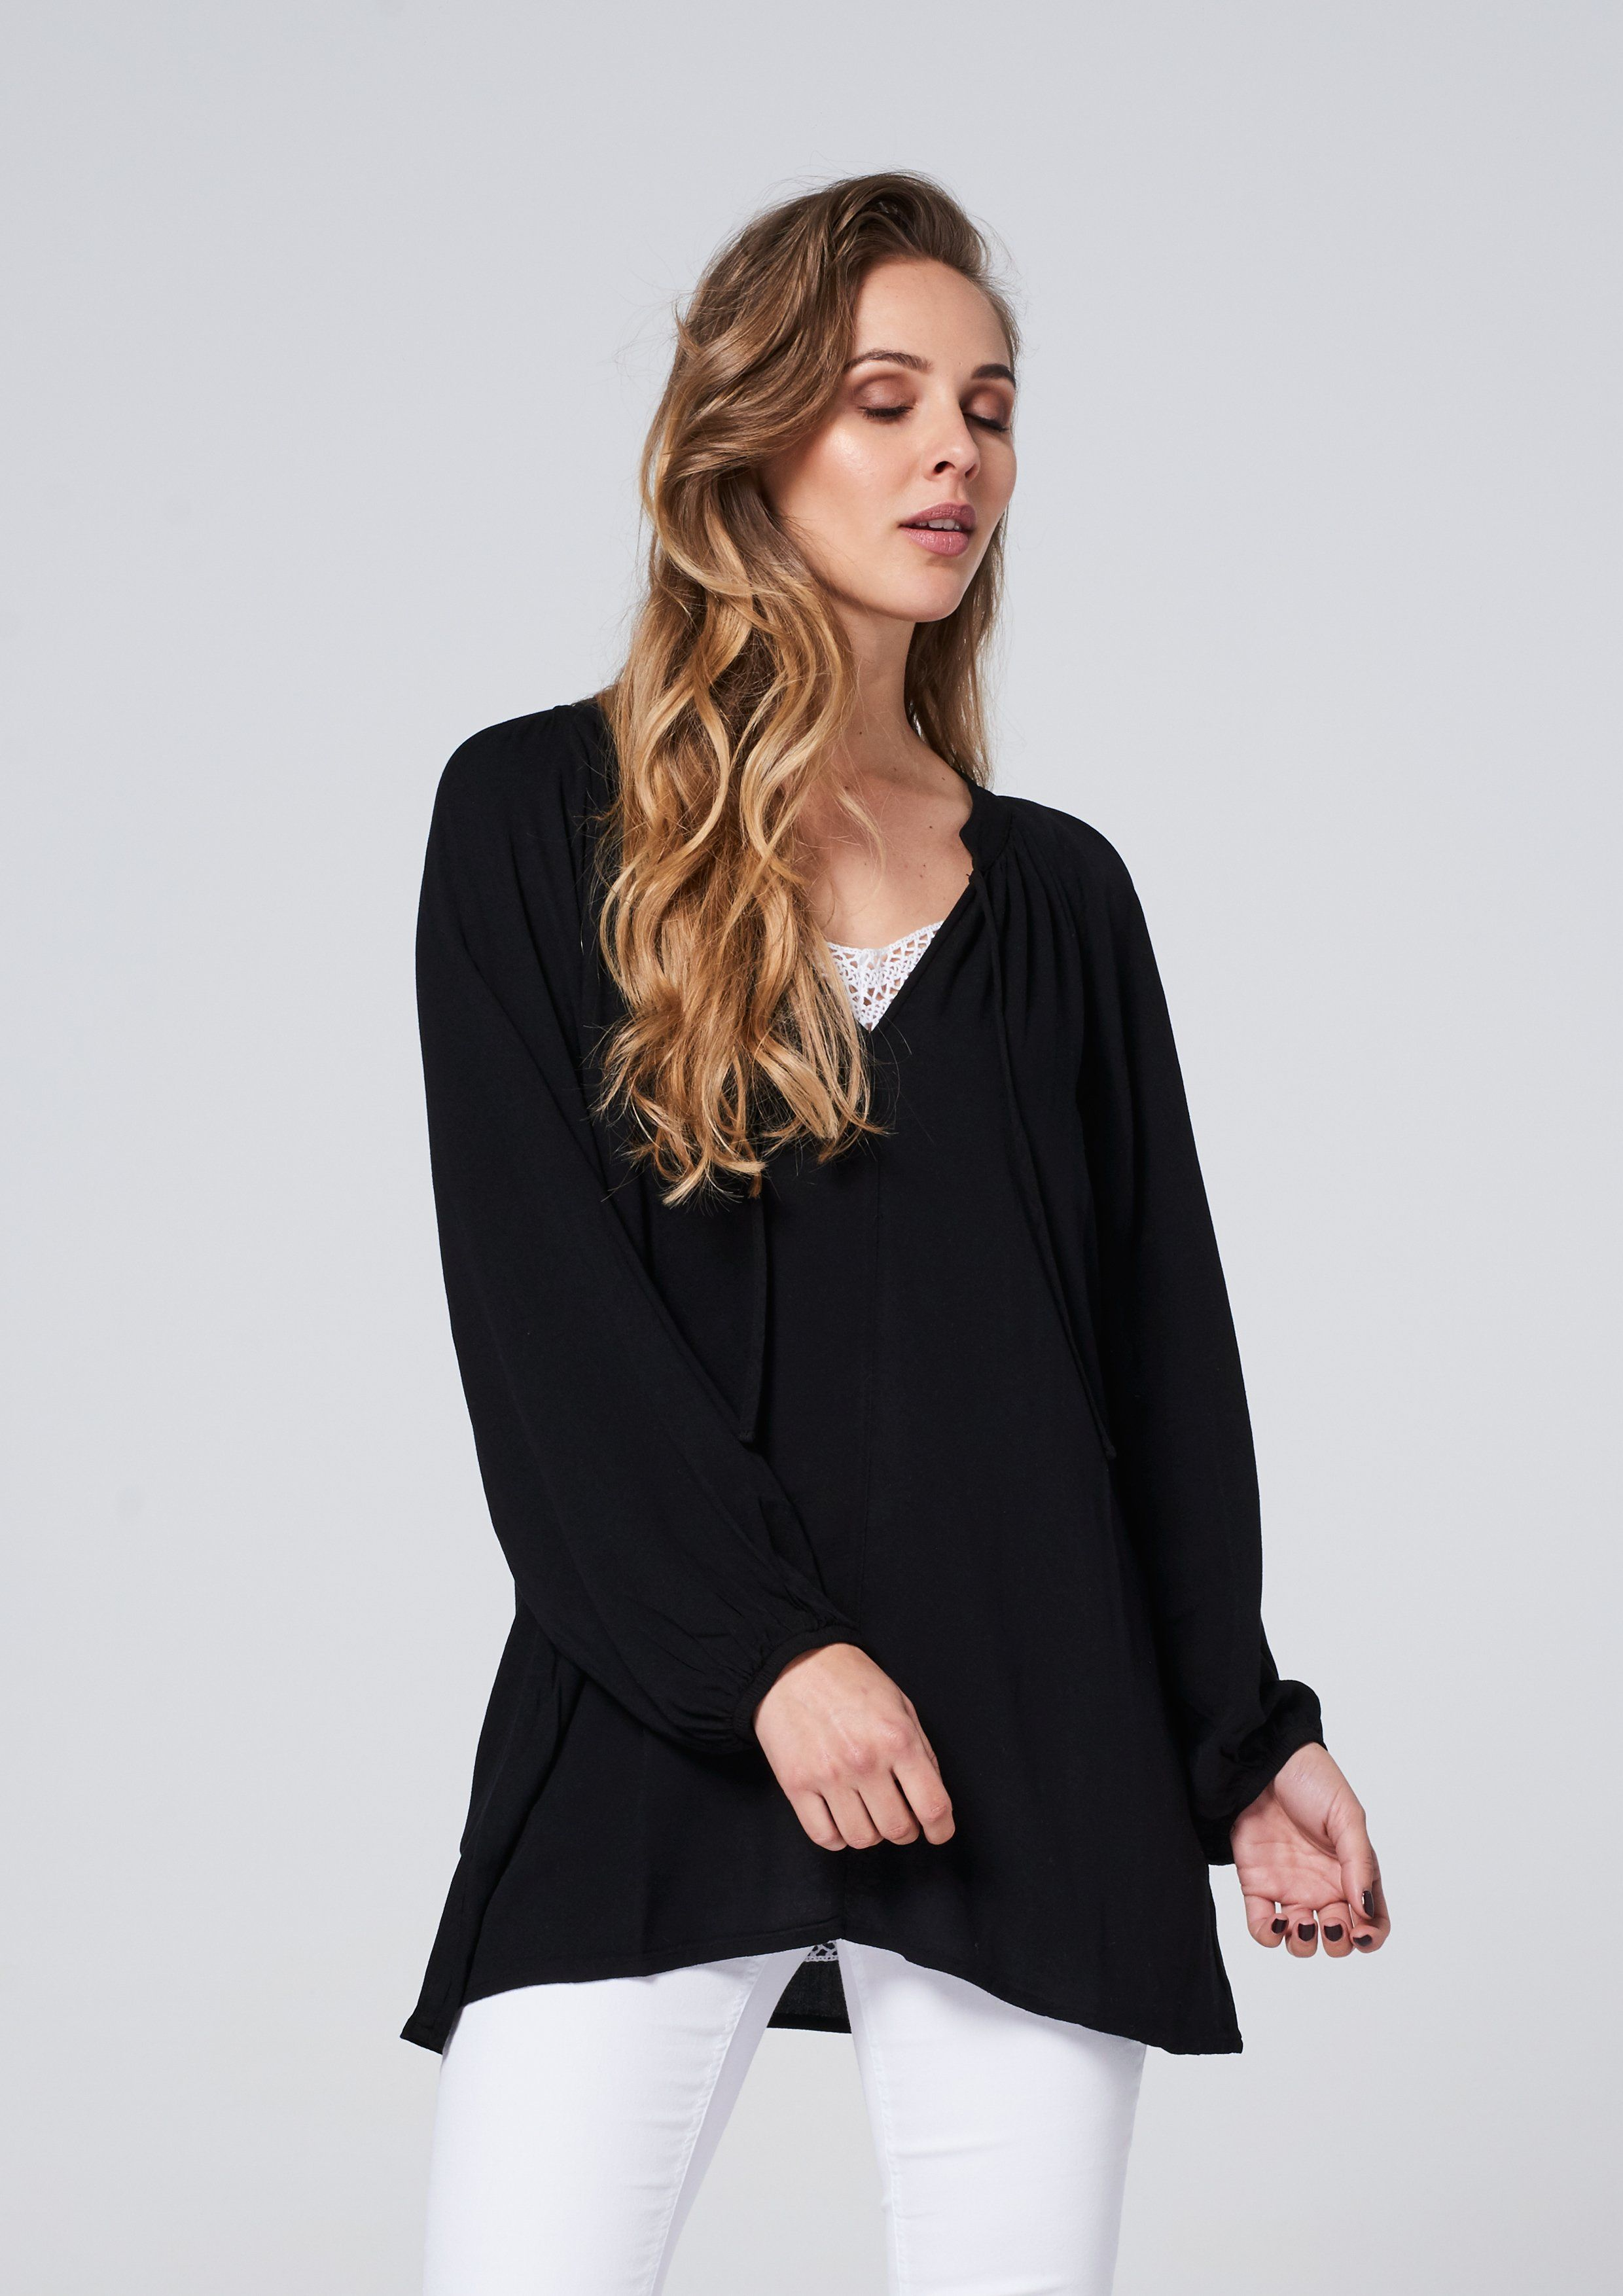 Buy How to black a wear flowy top picture trends